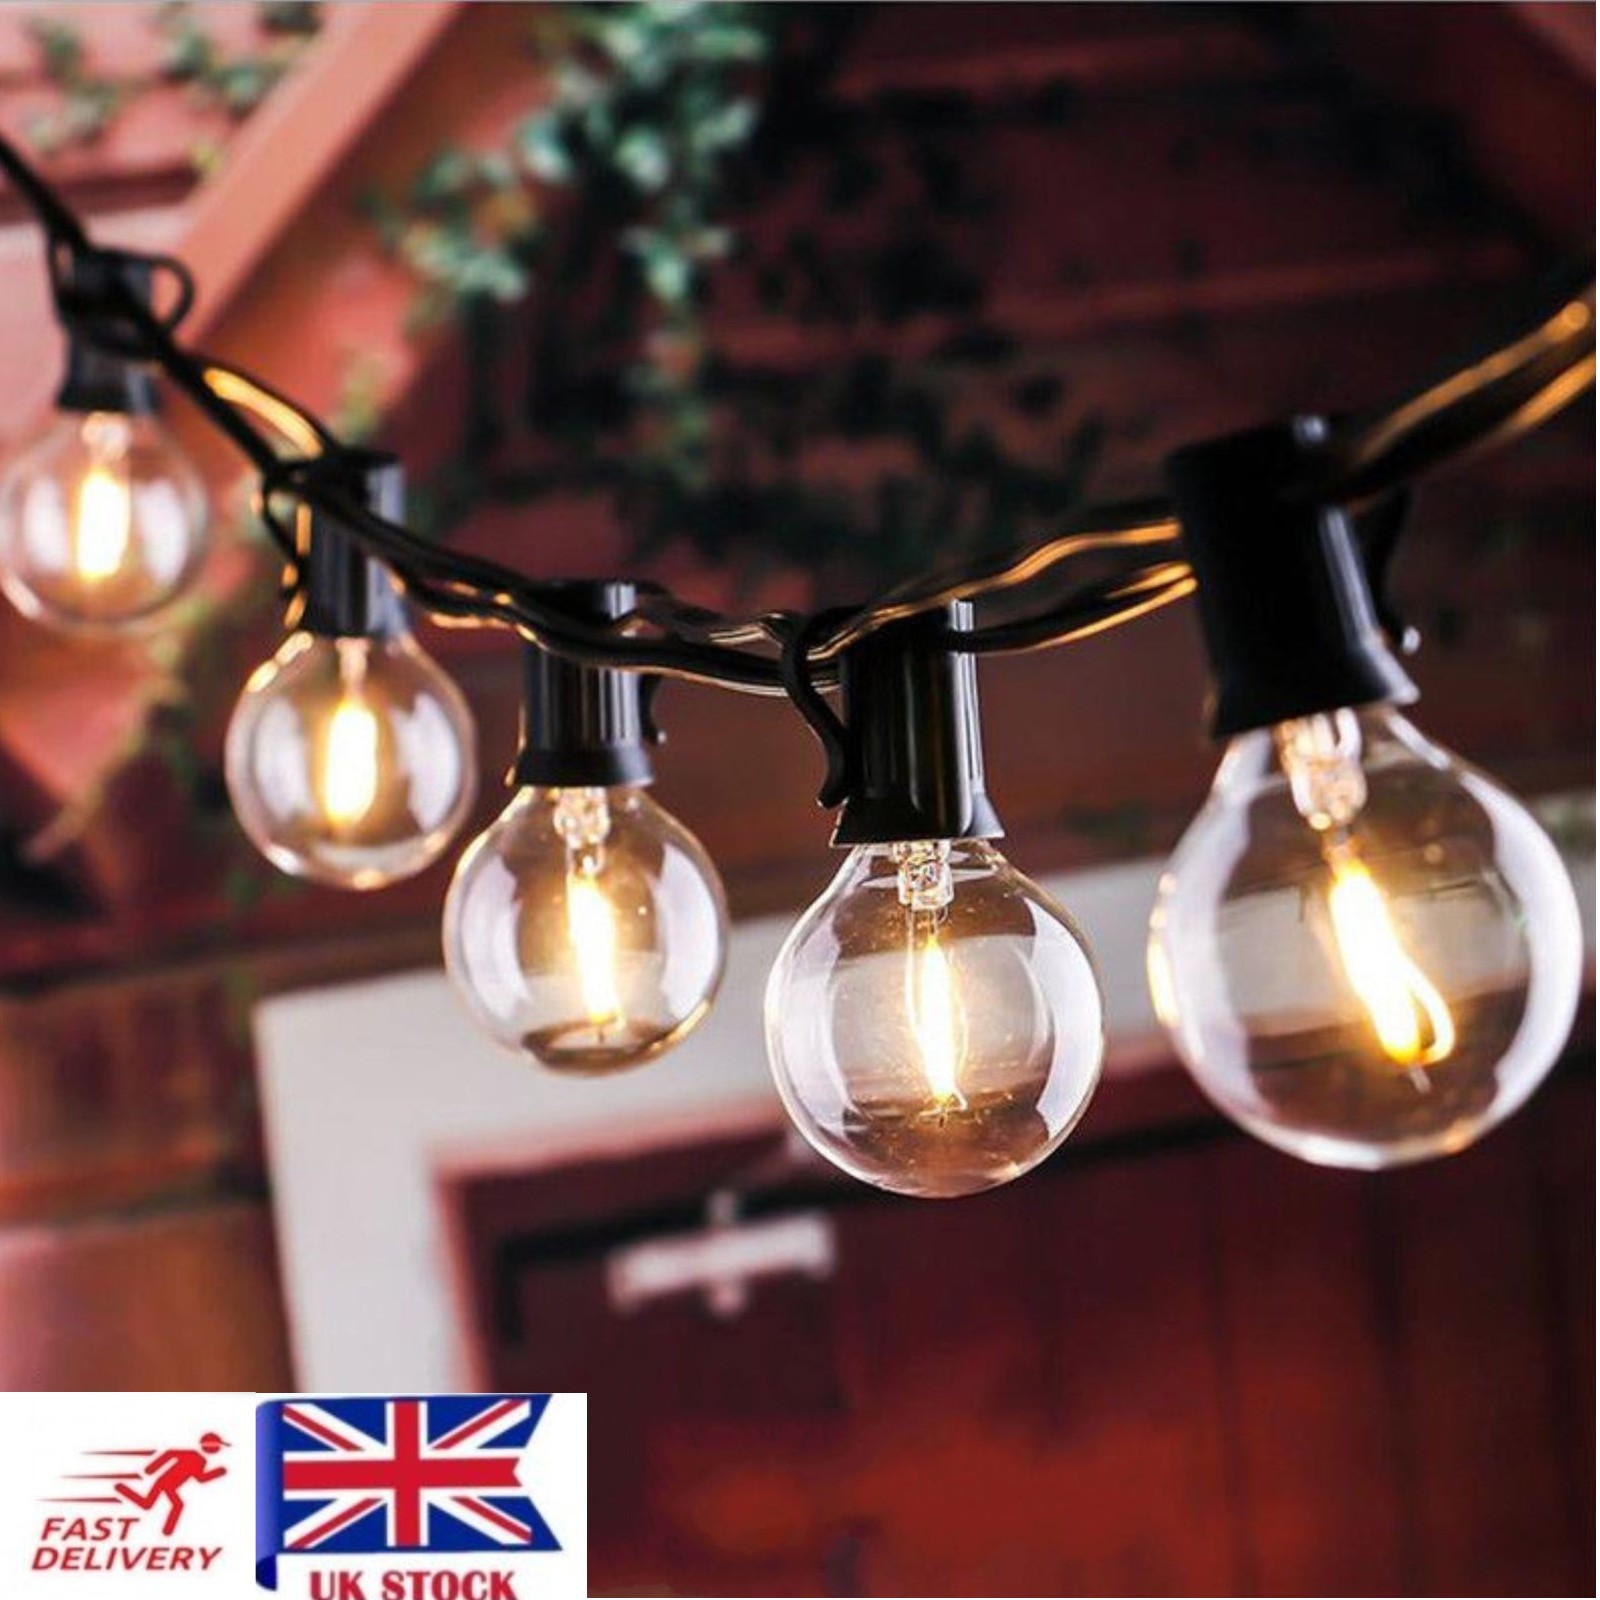 Details About 50ft Weatherproof Globe String Festoon Lights 50 Clear Bulbs G40 Indoor Outdoor